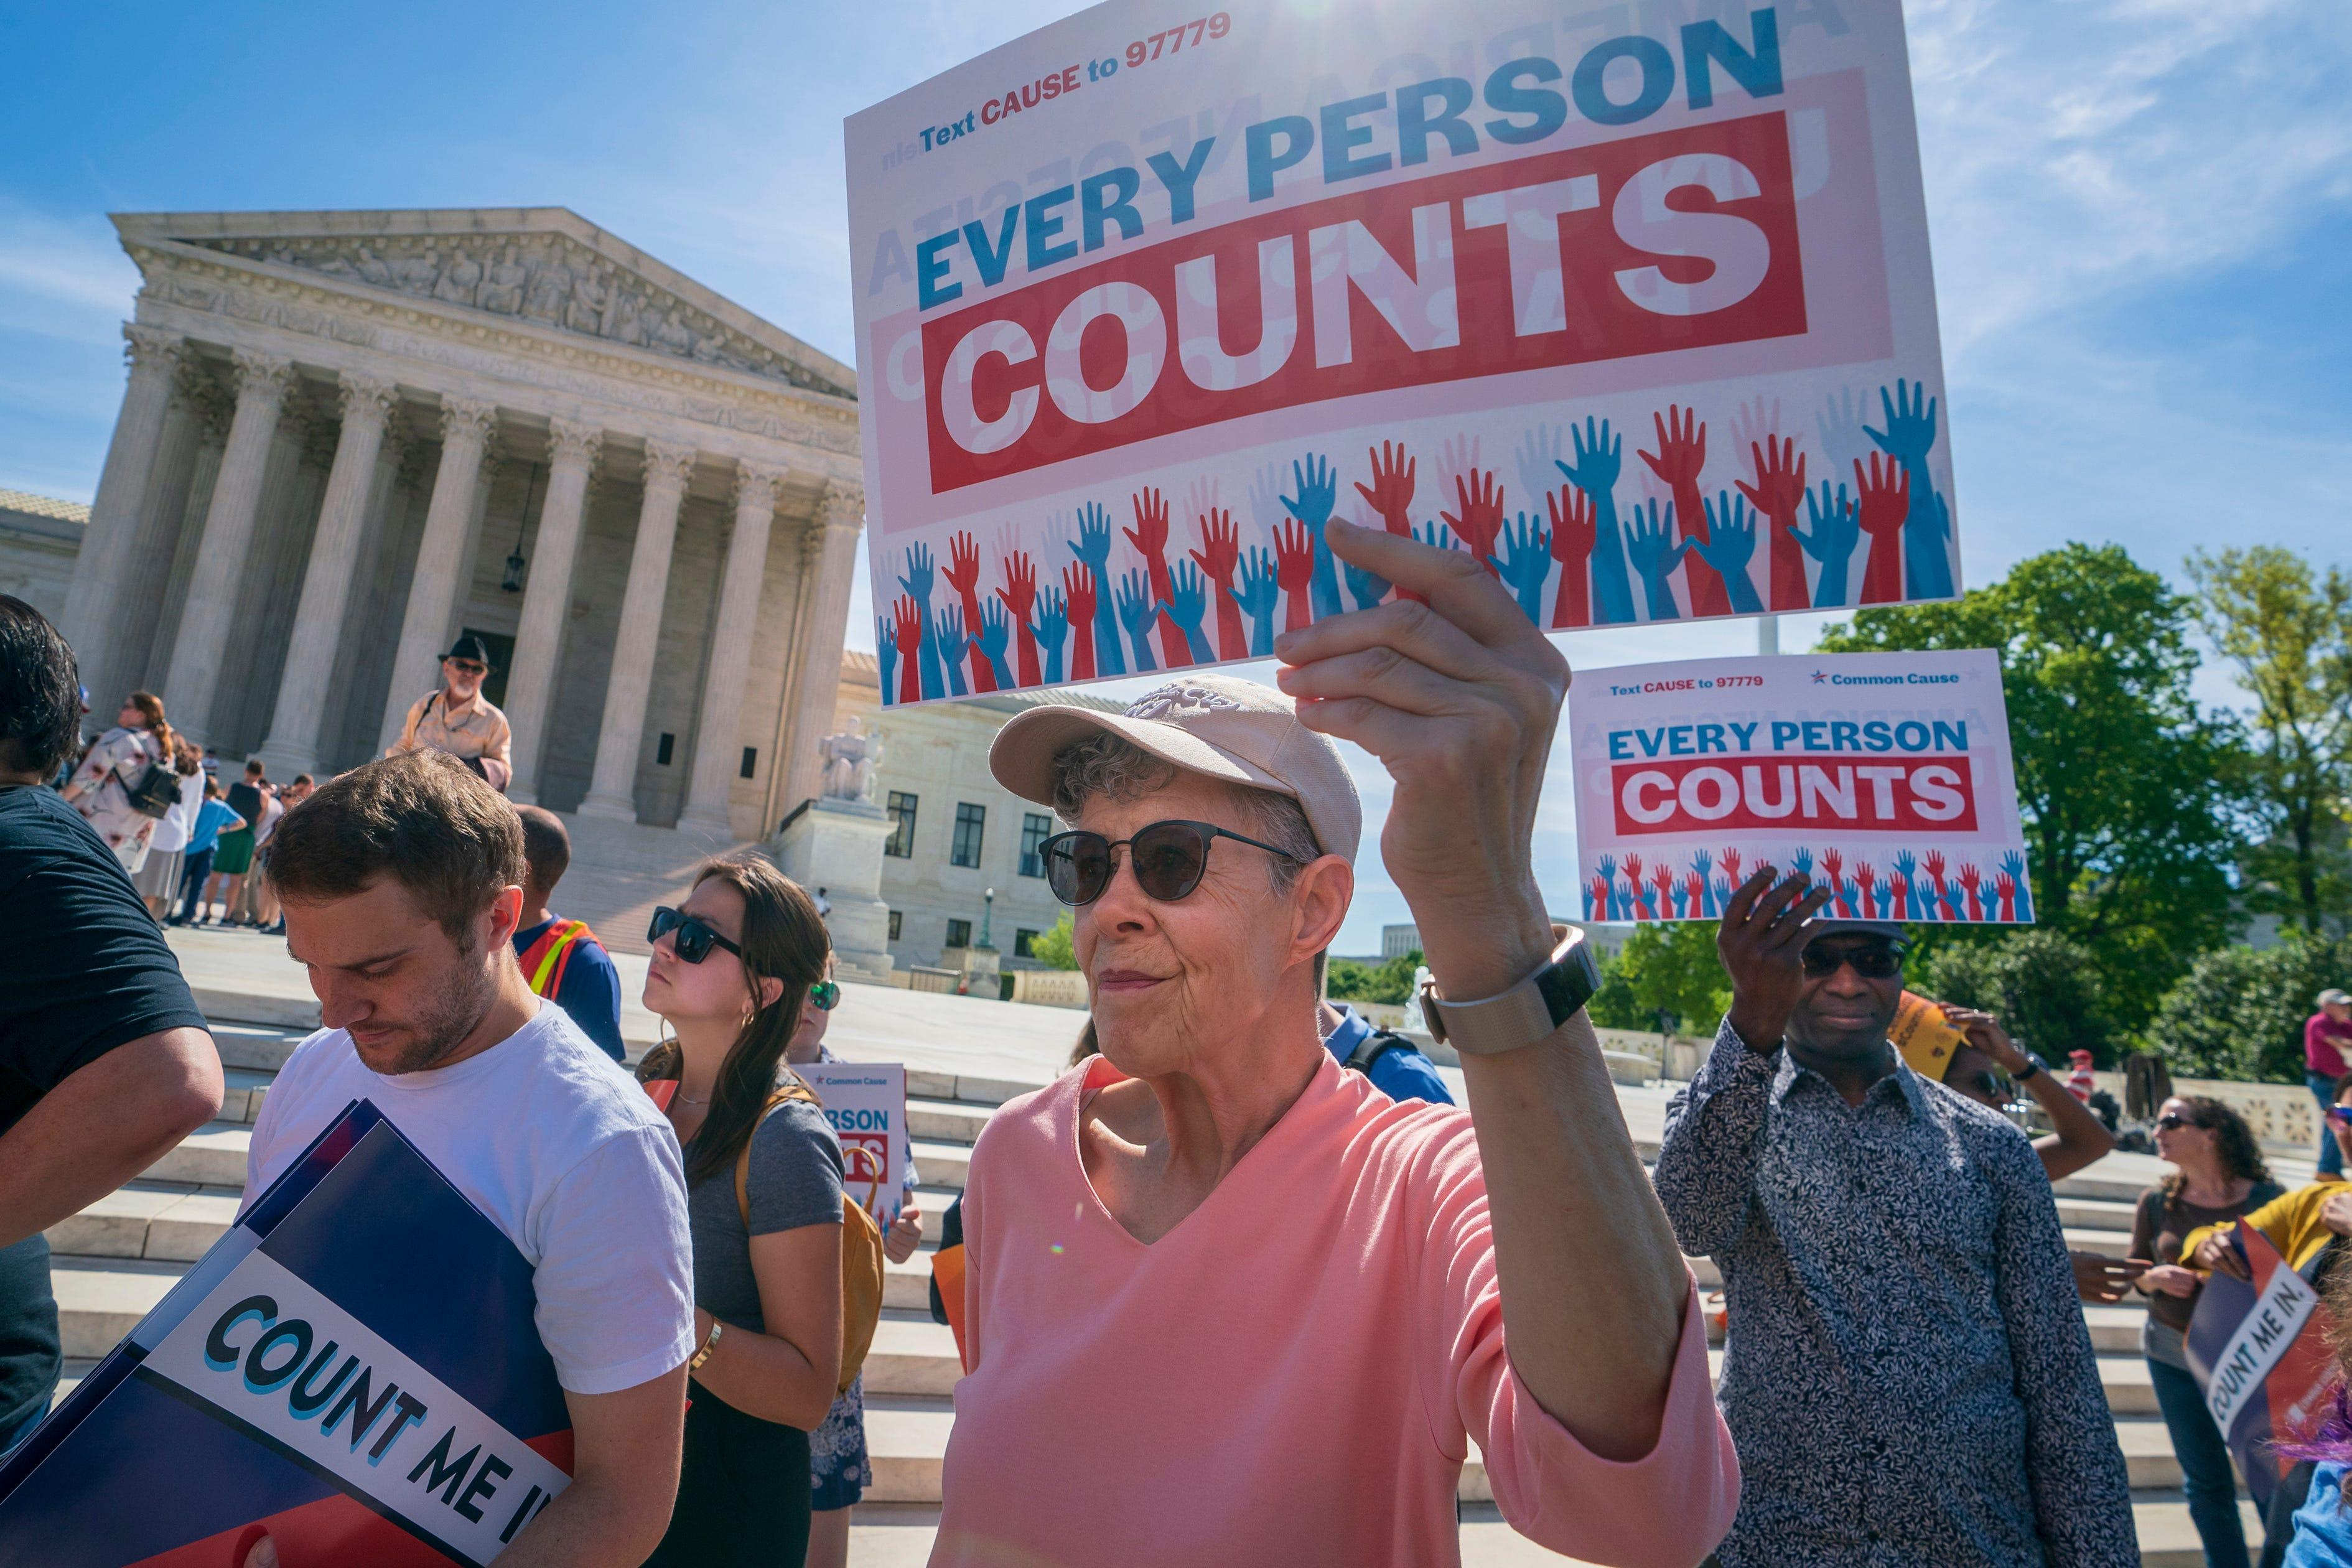 Hey Donald Trump, another court just saw through your census citizenship question charade